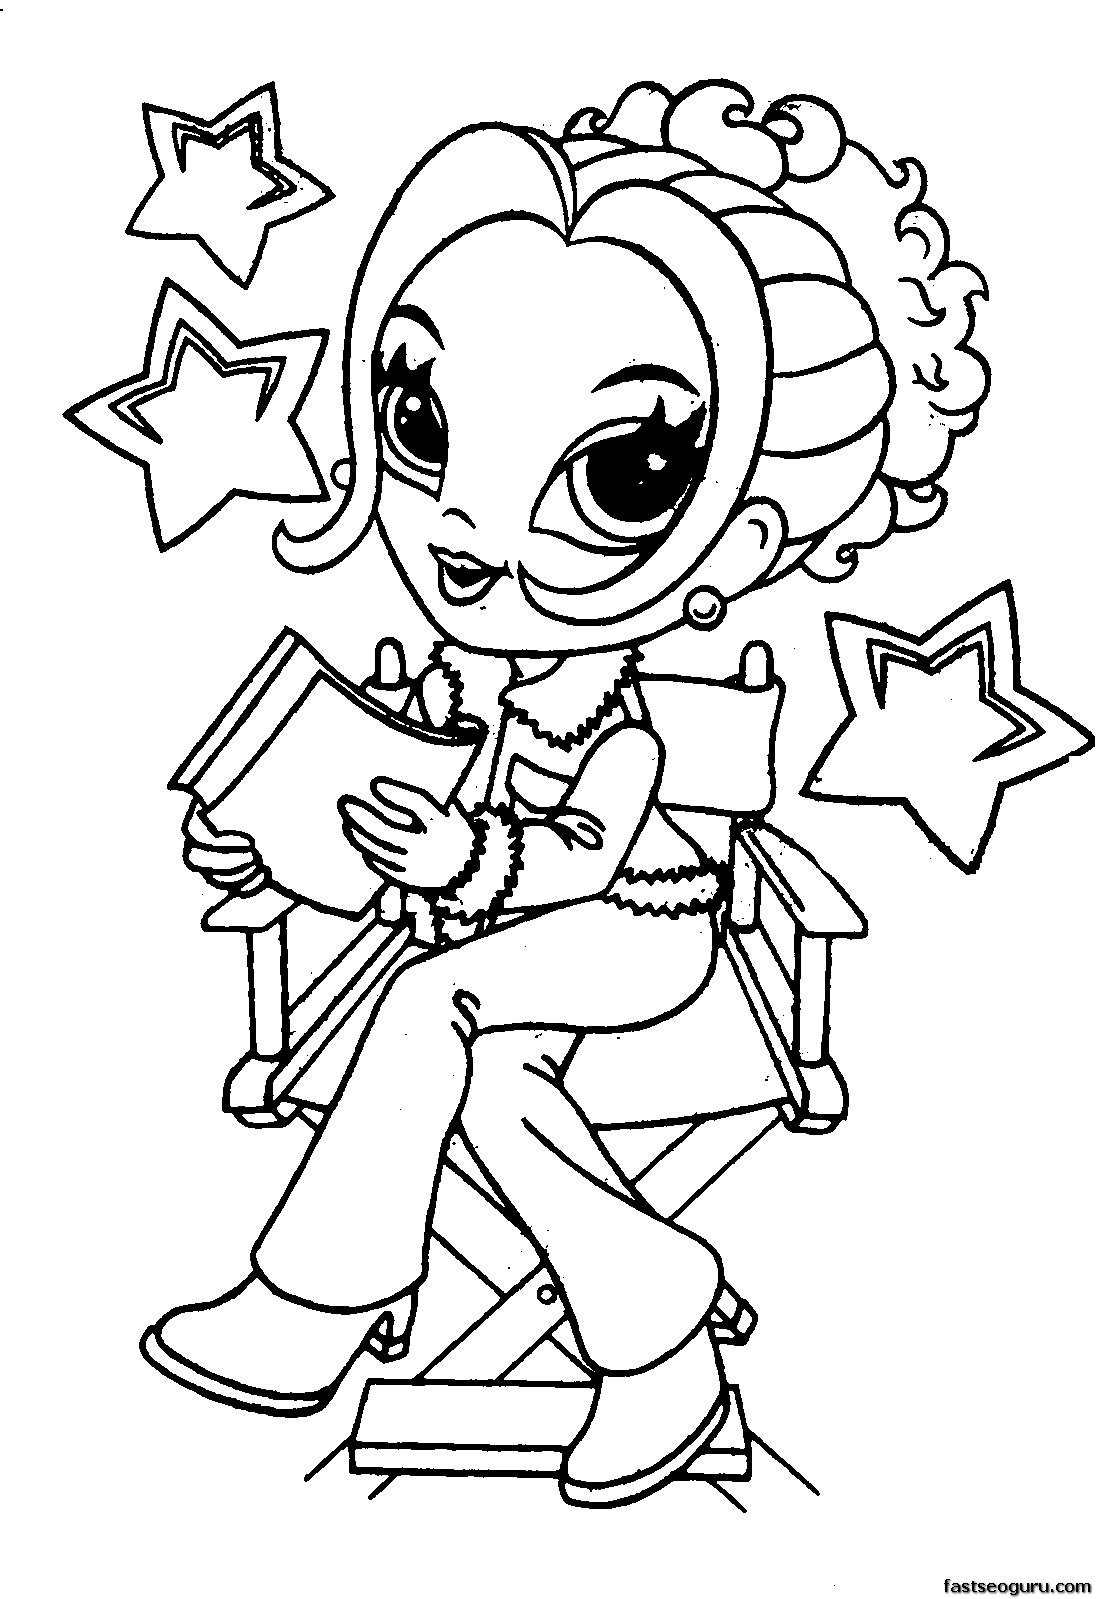 gir coloring book pages - photo#7